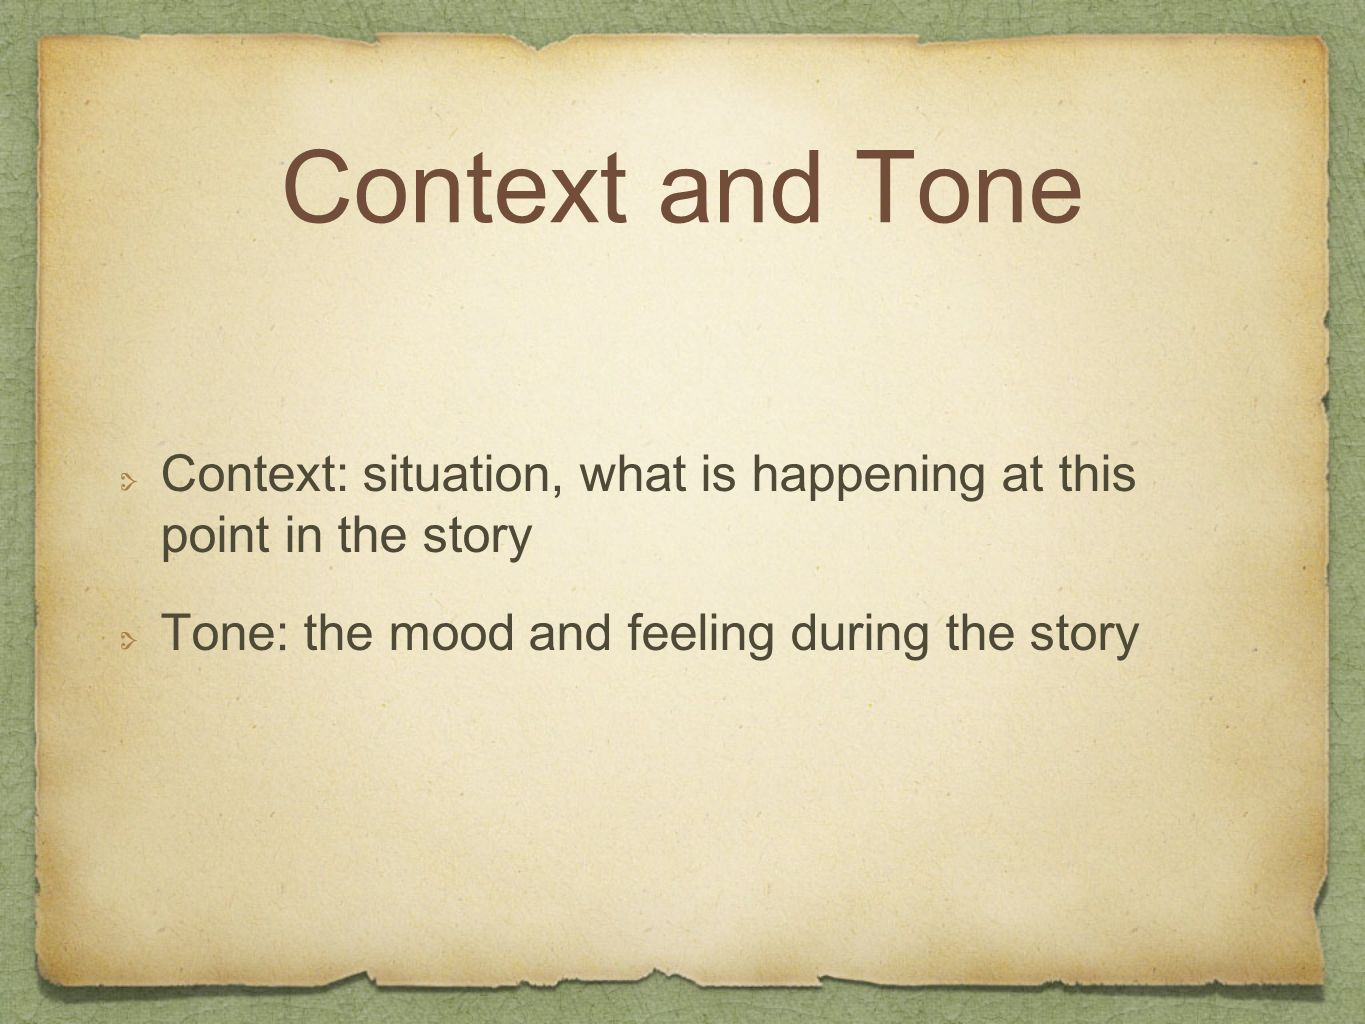 Context and Tone Context: situation, what is happening at this point in the story.